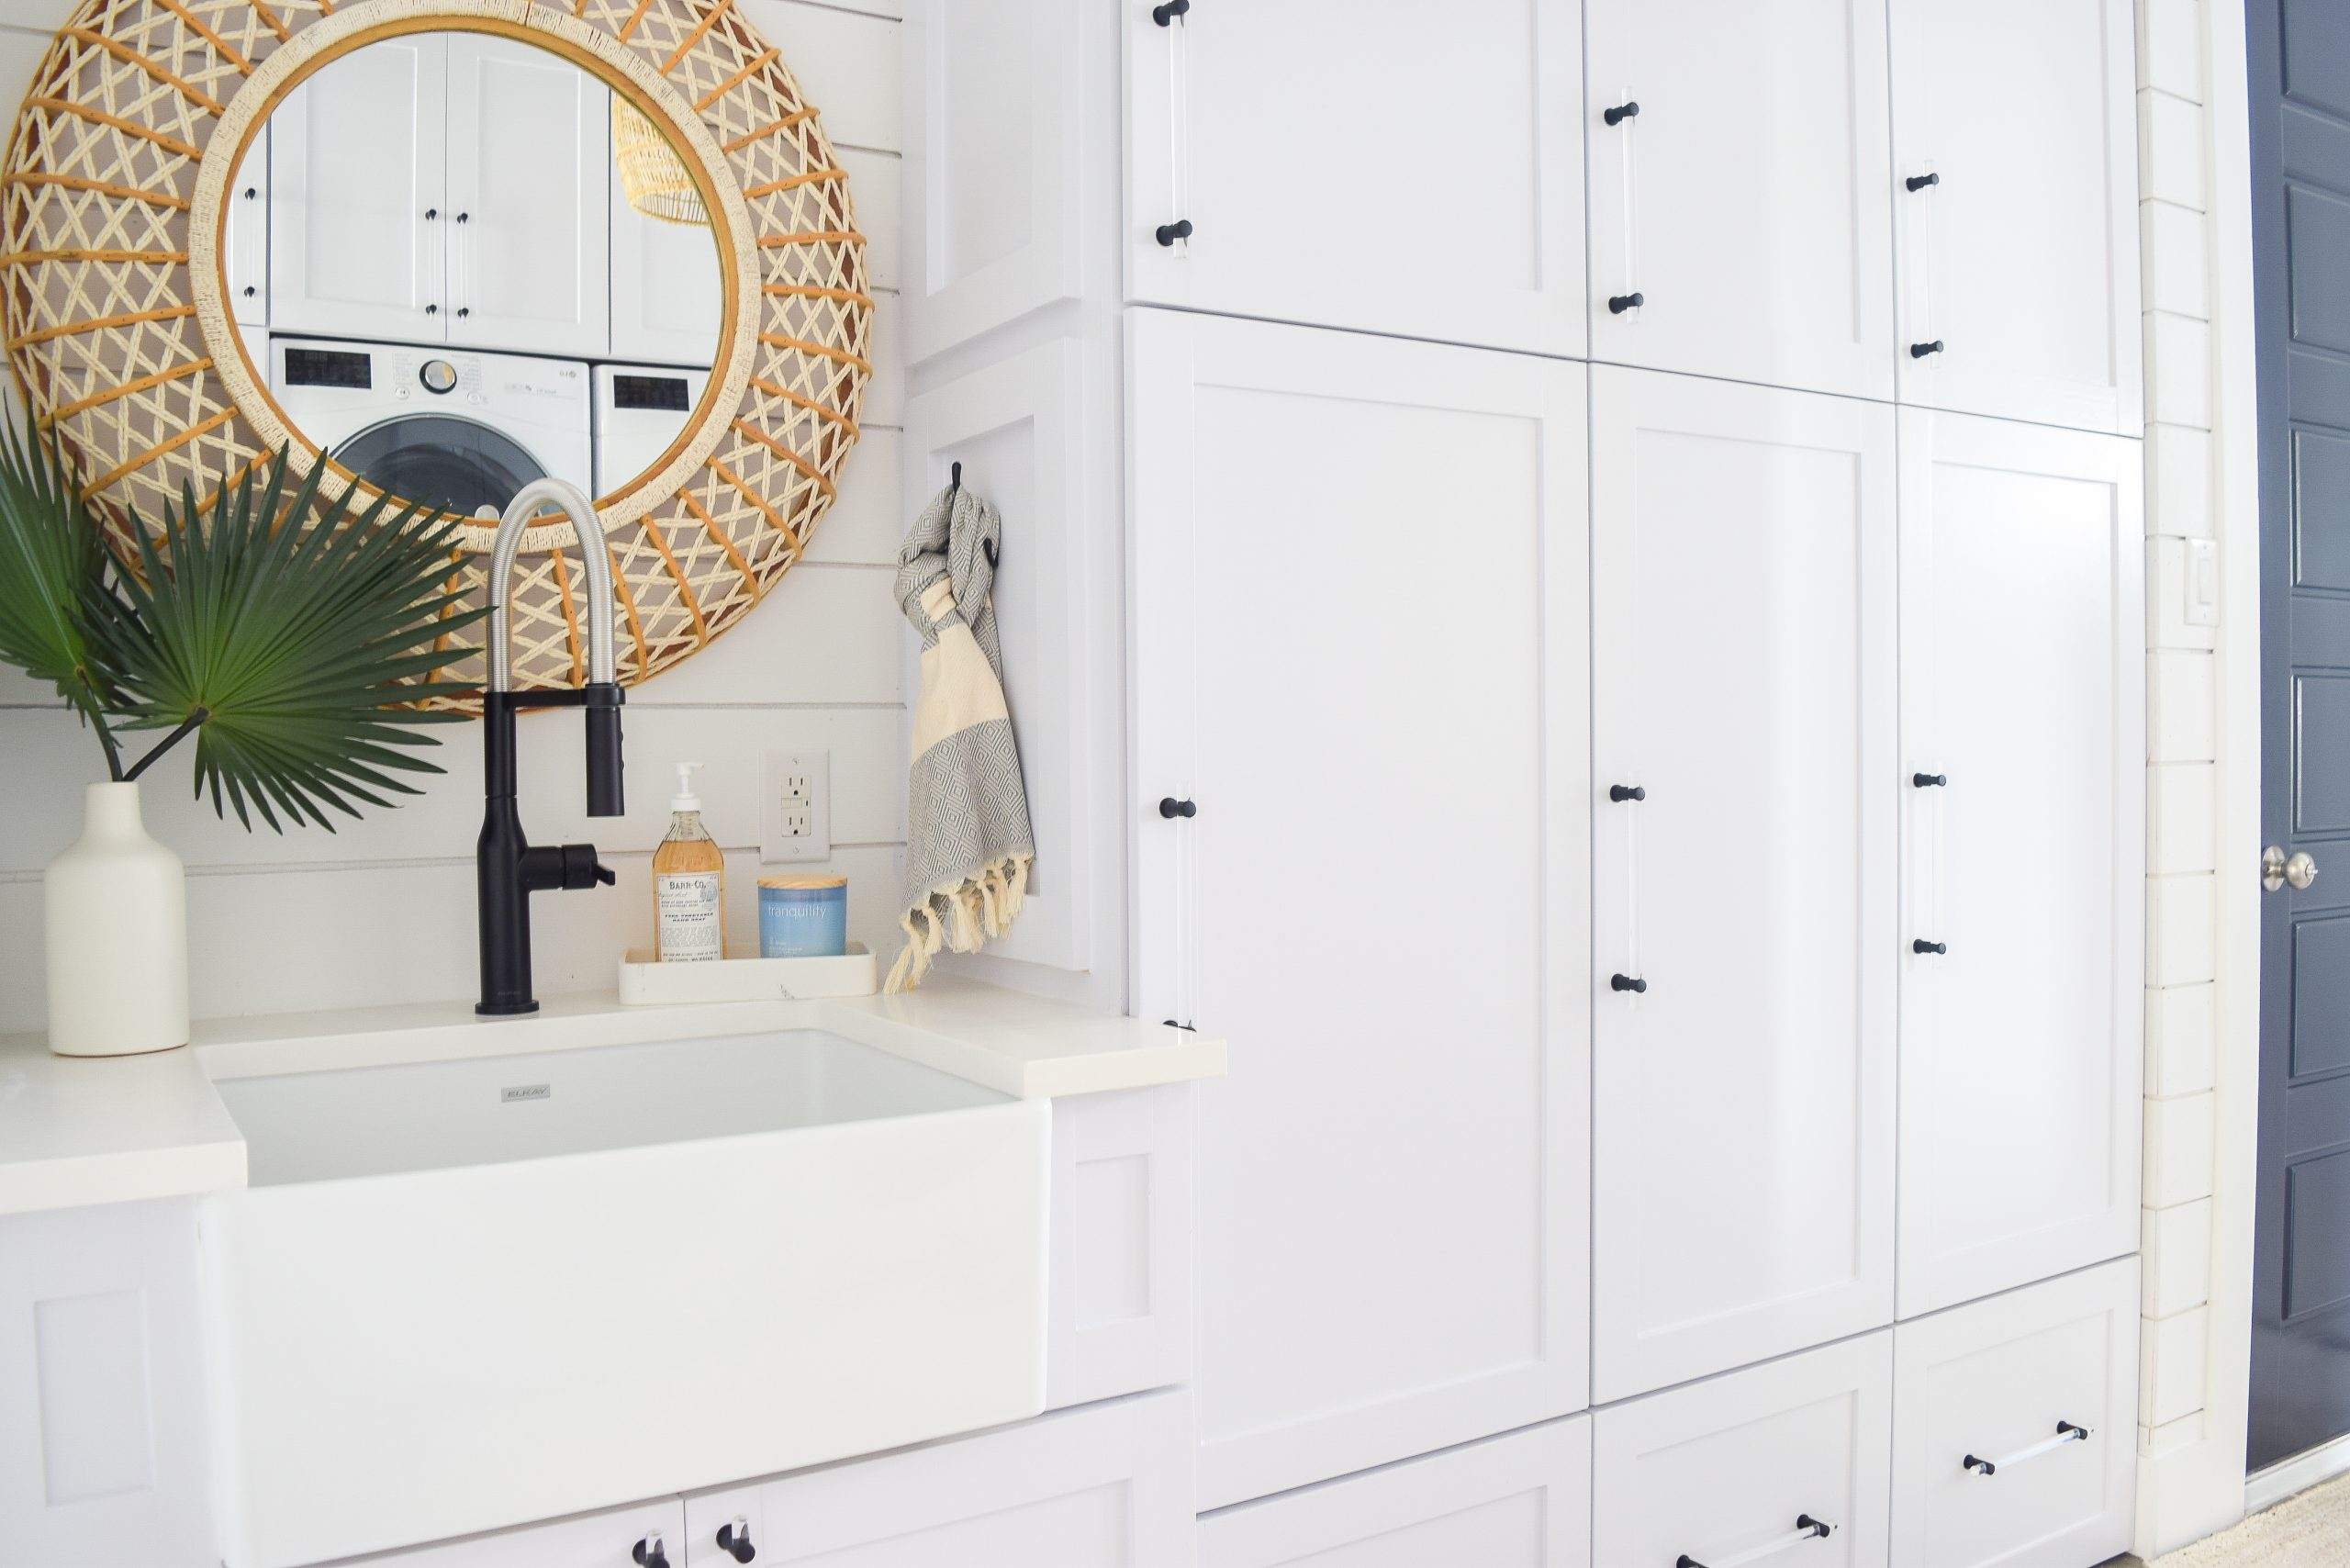 High-end and luxury laundry rooms